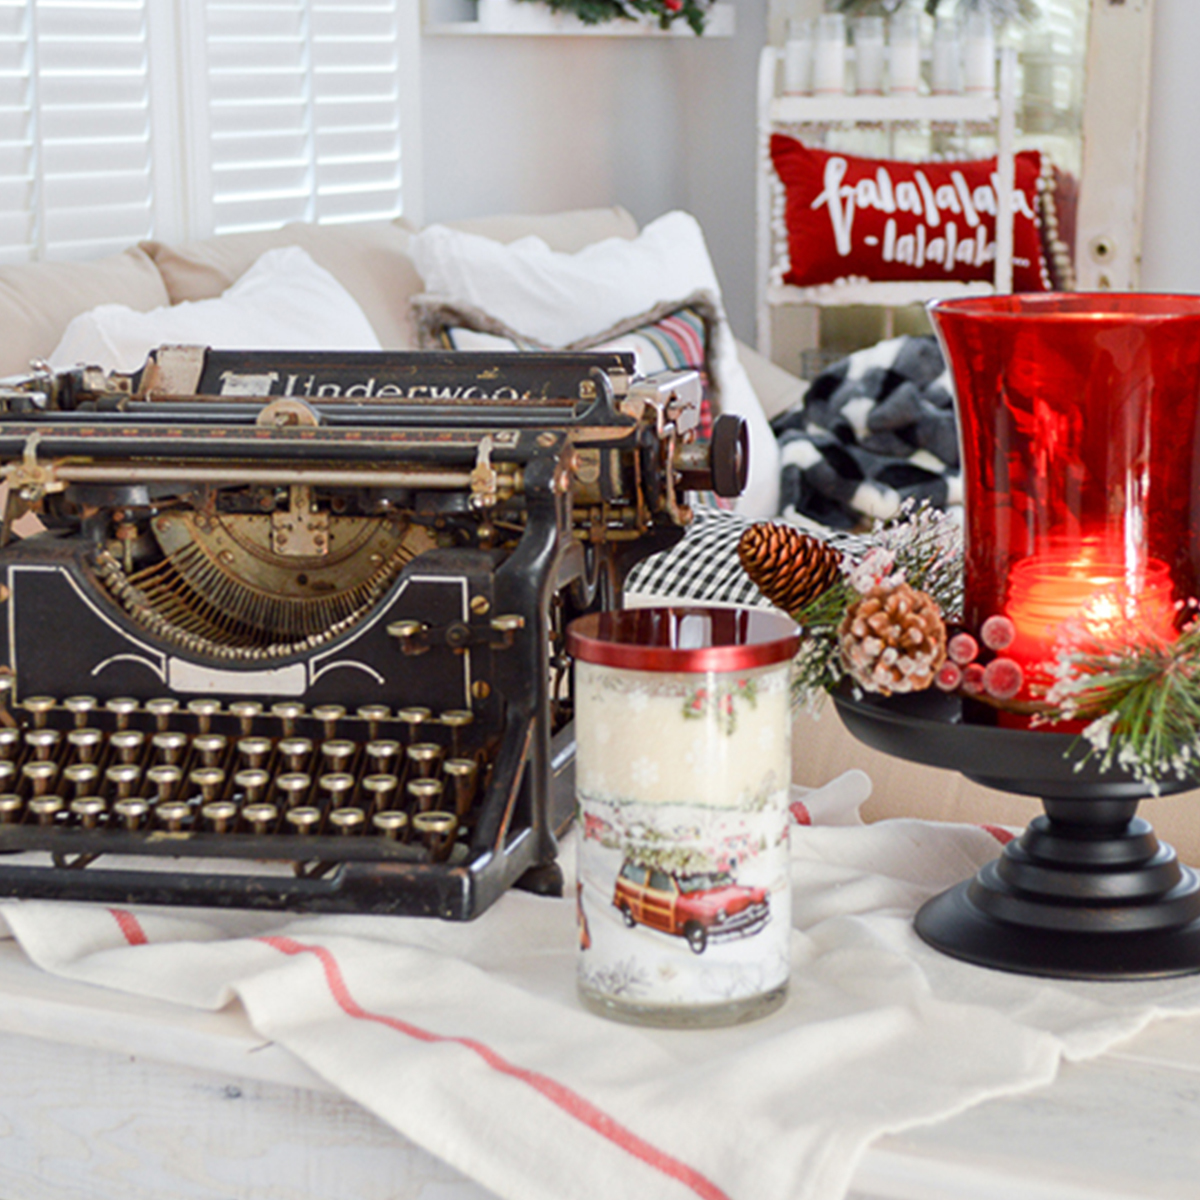 Better Homes & Gardens holiday candle holders photo